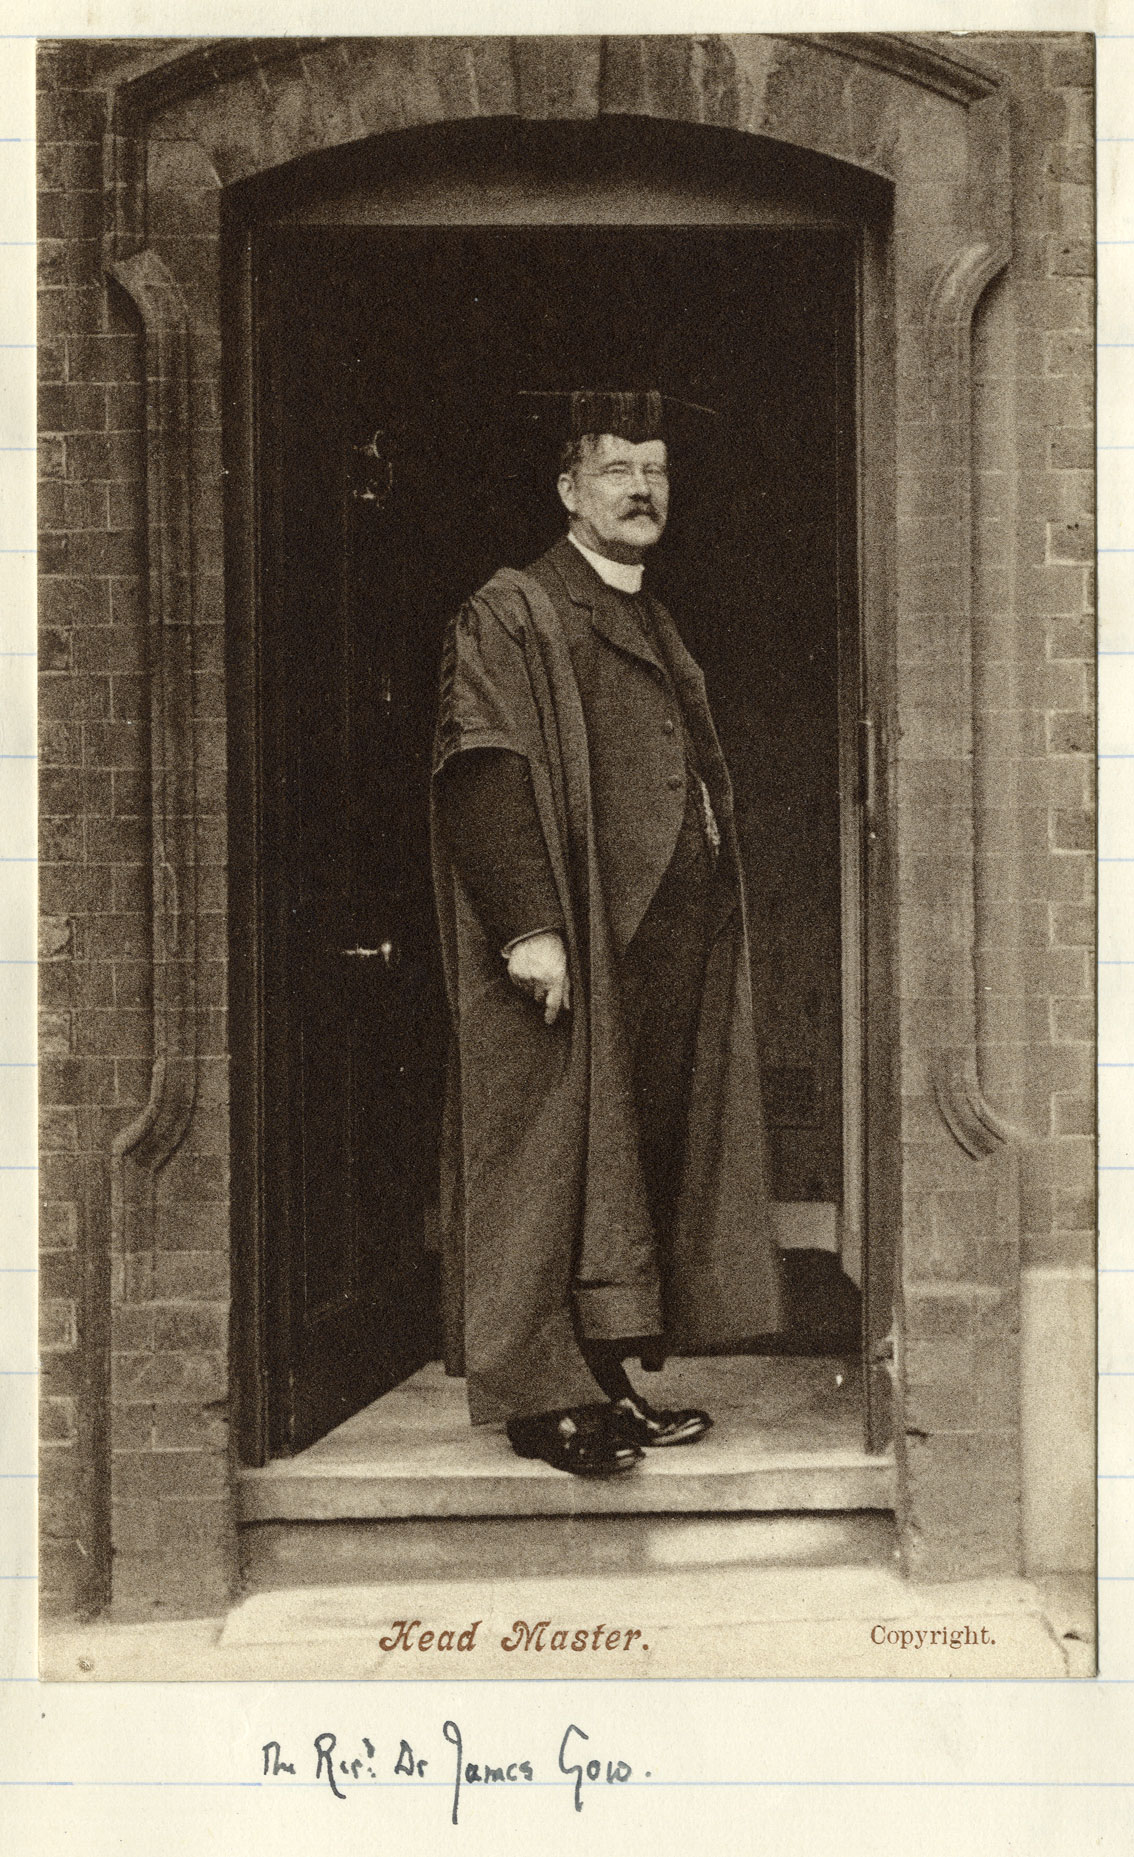 Photograph of Head Master Gow